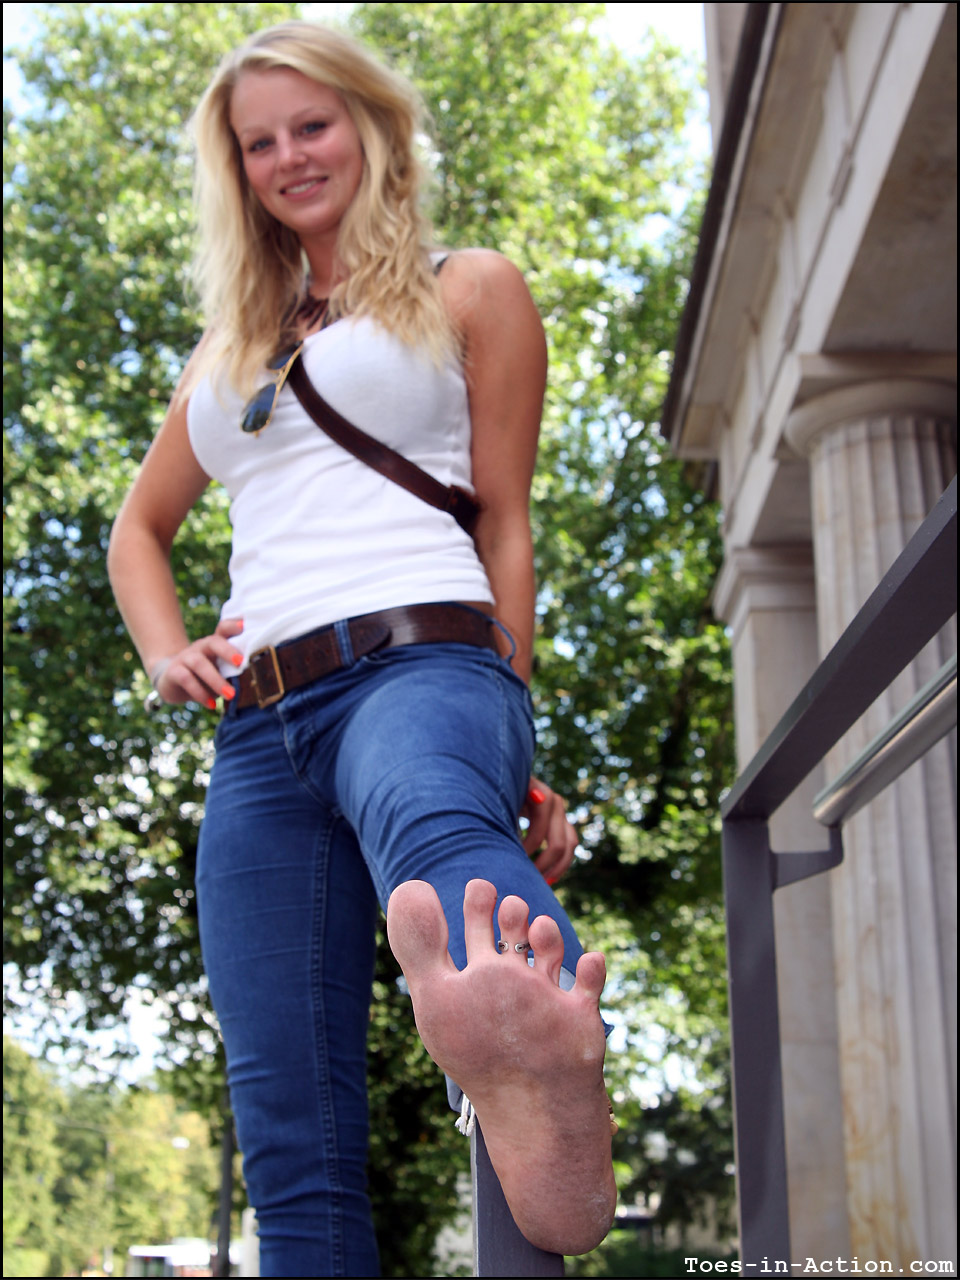 Wu's Feet Links - Barefoot in the City